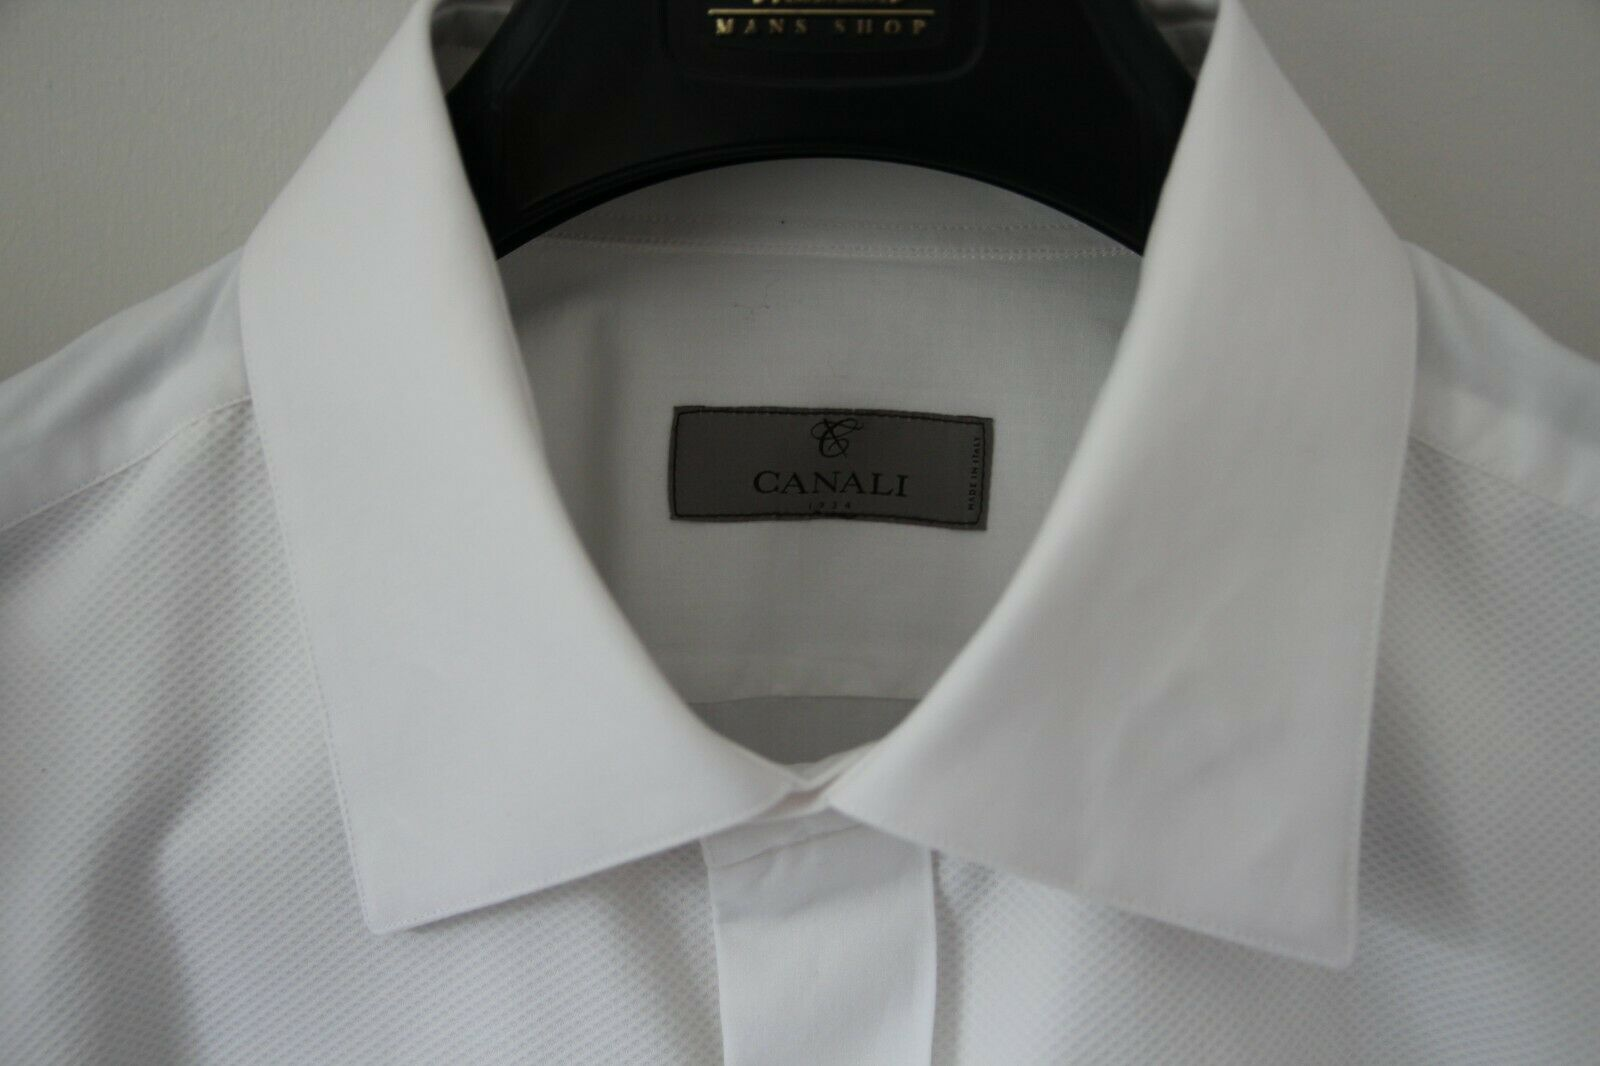 New CANALI WHITE COTTON PIQUE DRESS SHIRT WITH PLEATED FRONT from HARRODS